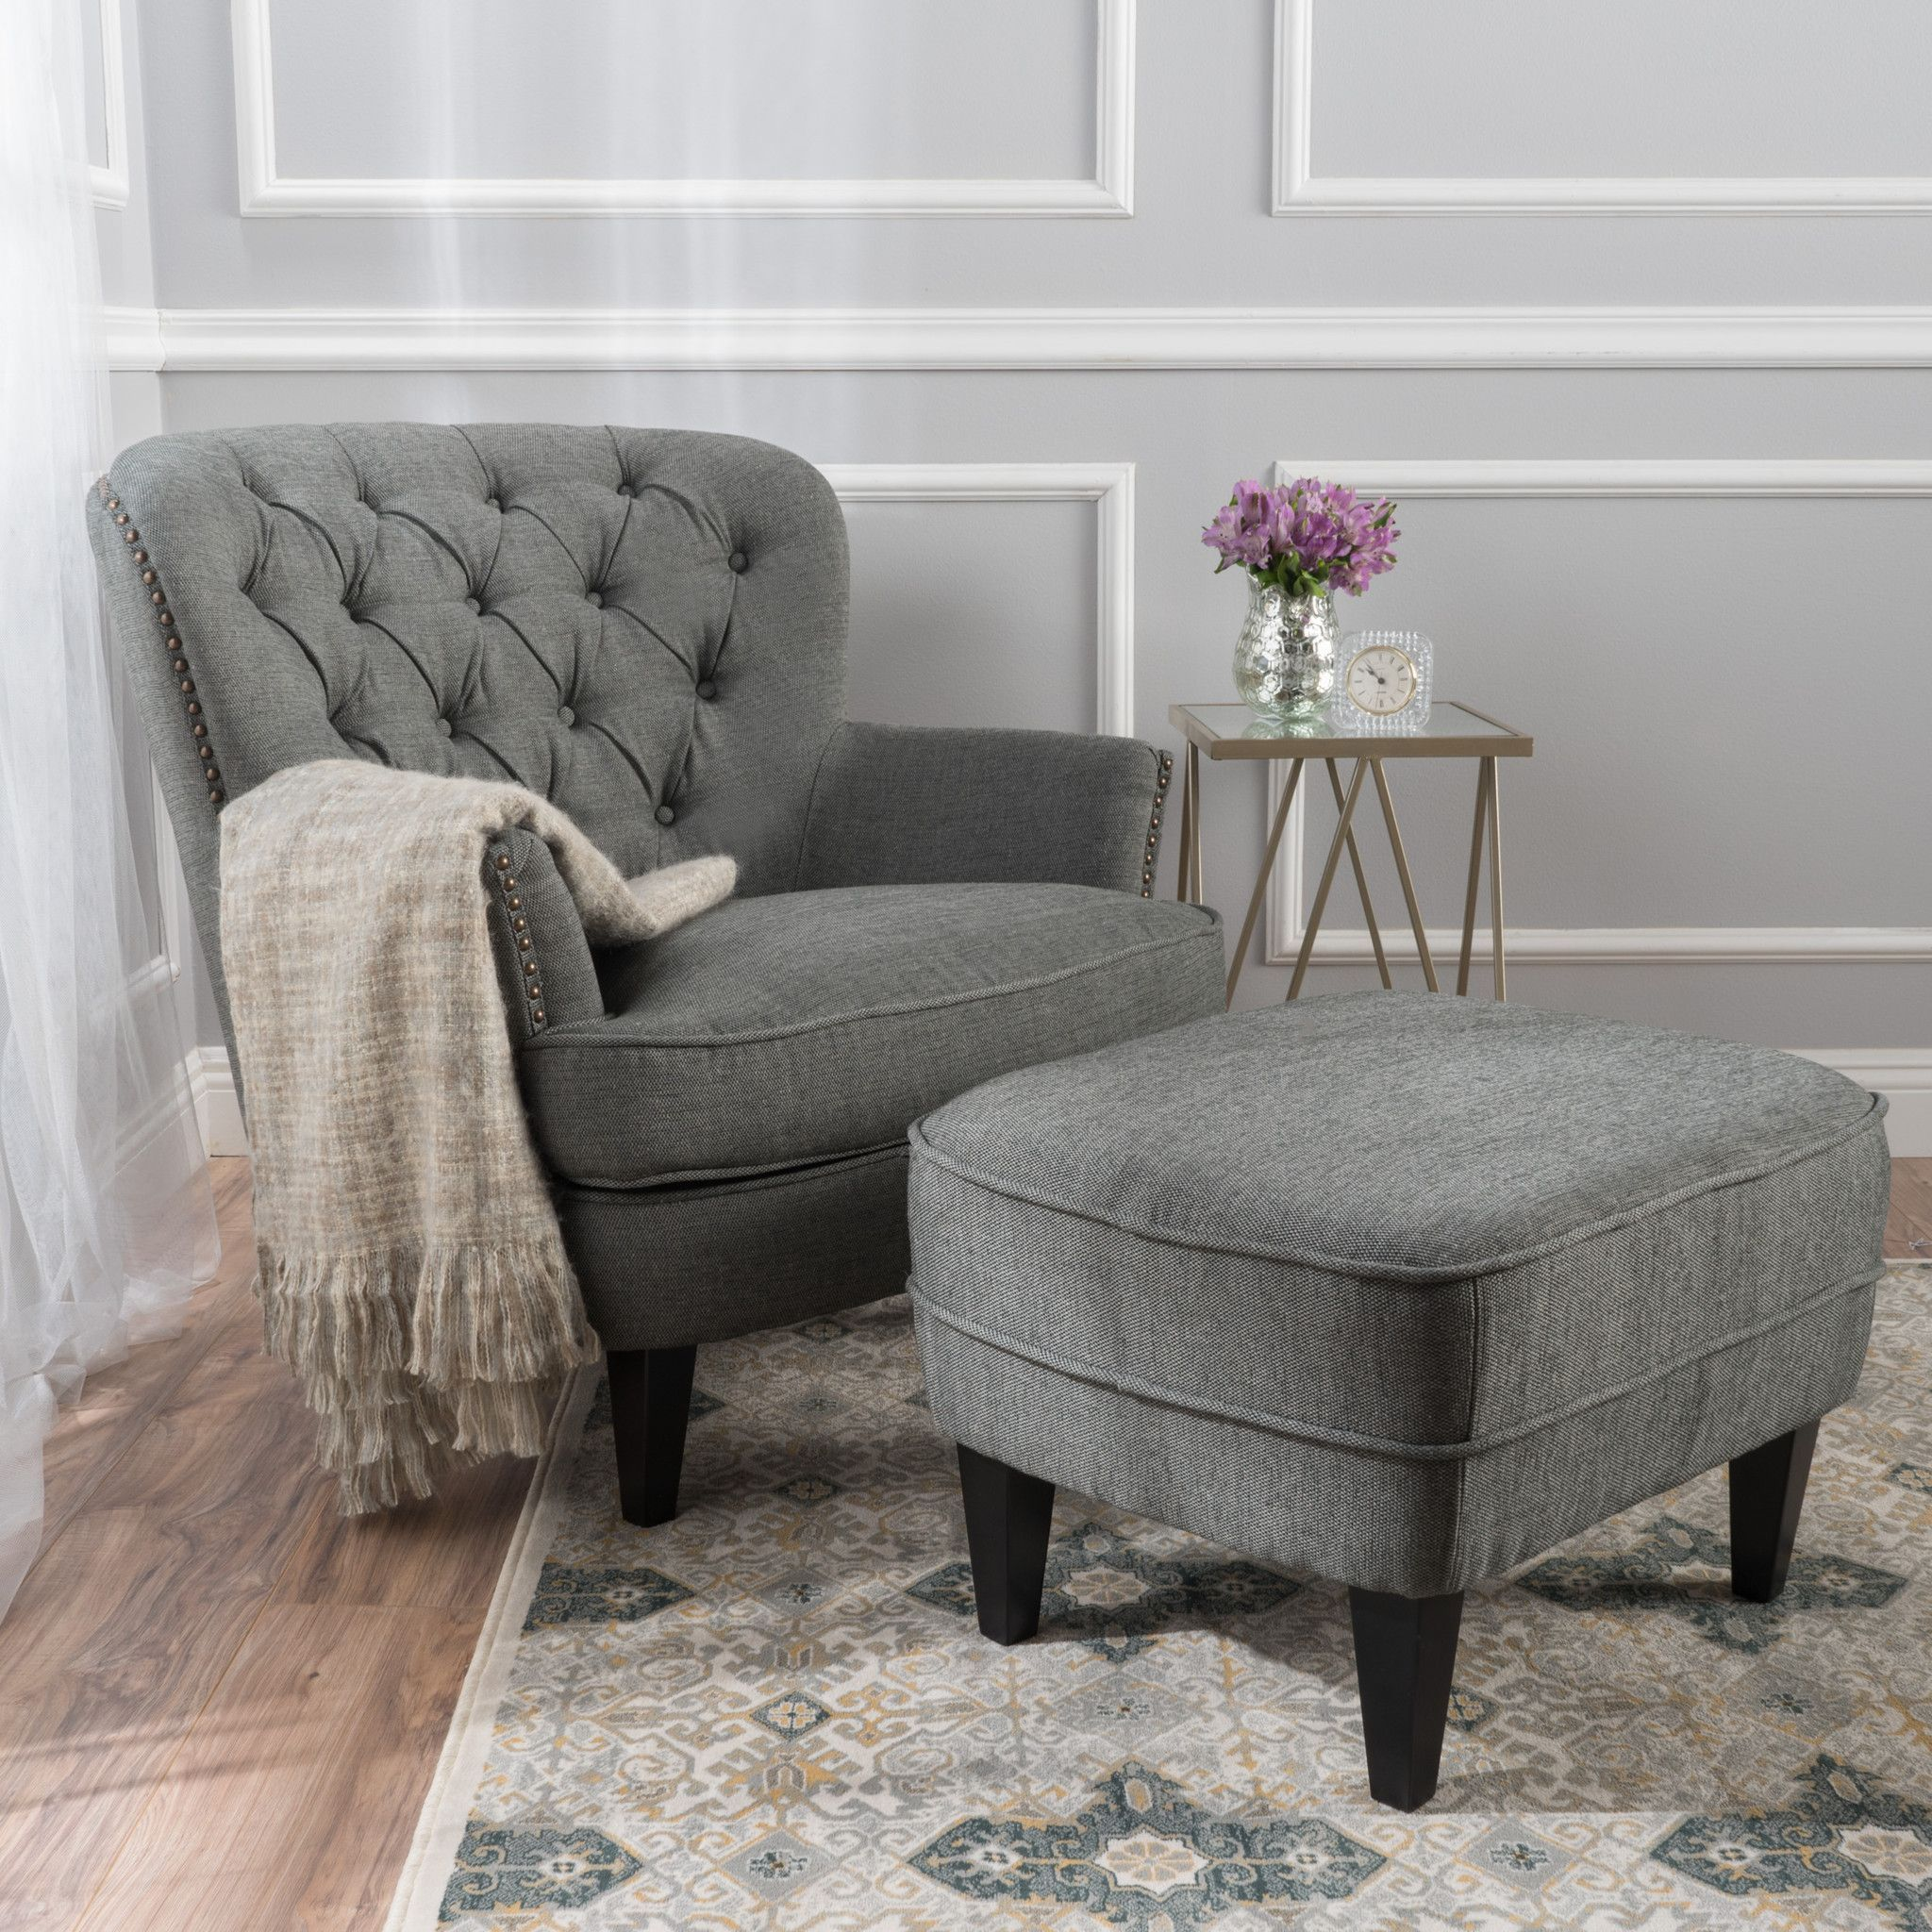 Teton Button Tufted Upholstered Club Chair With Footstool